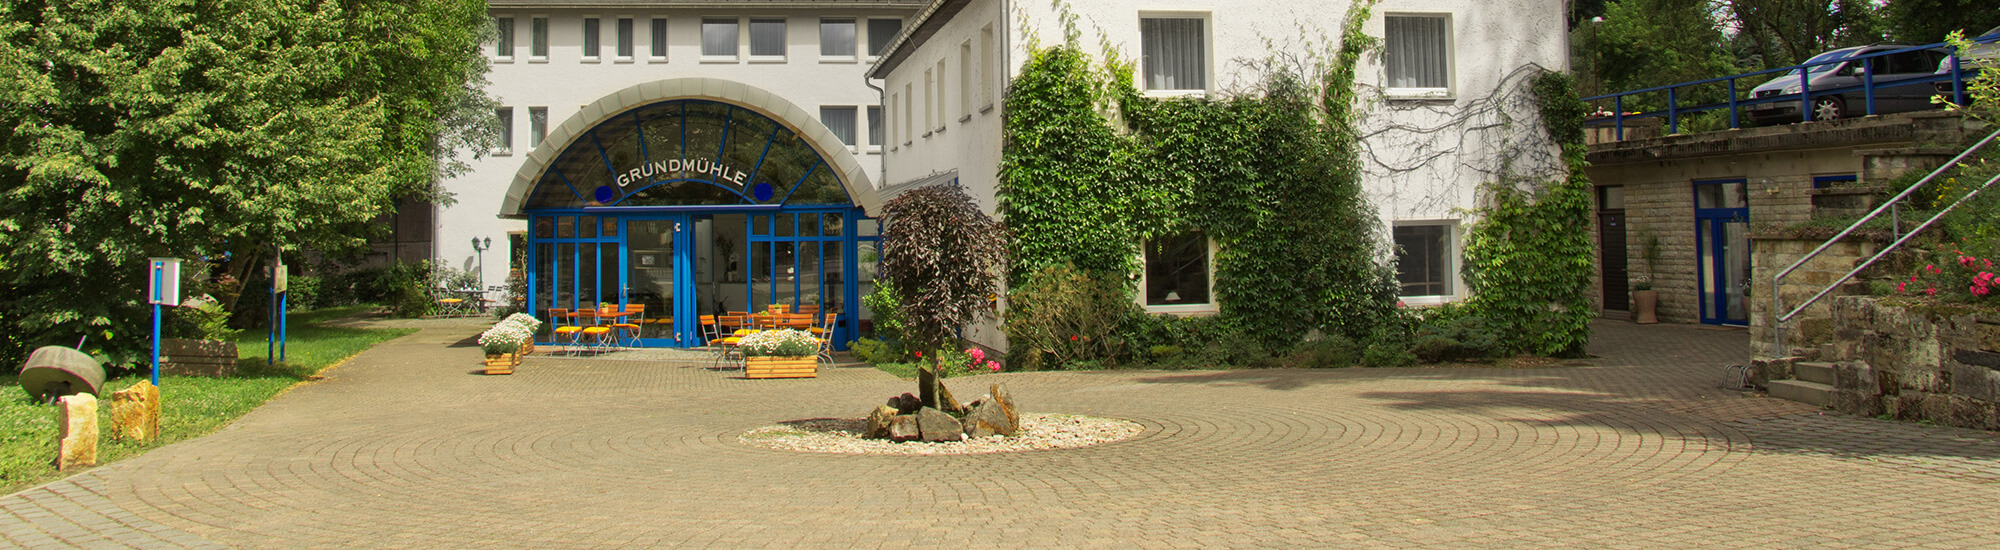 Hotel in Bad Schandau